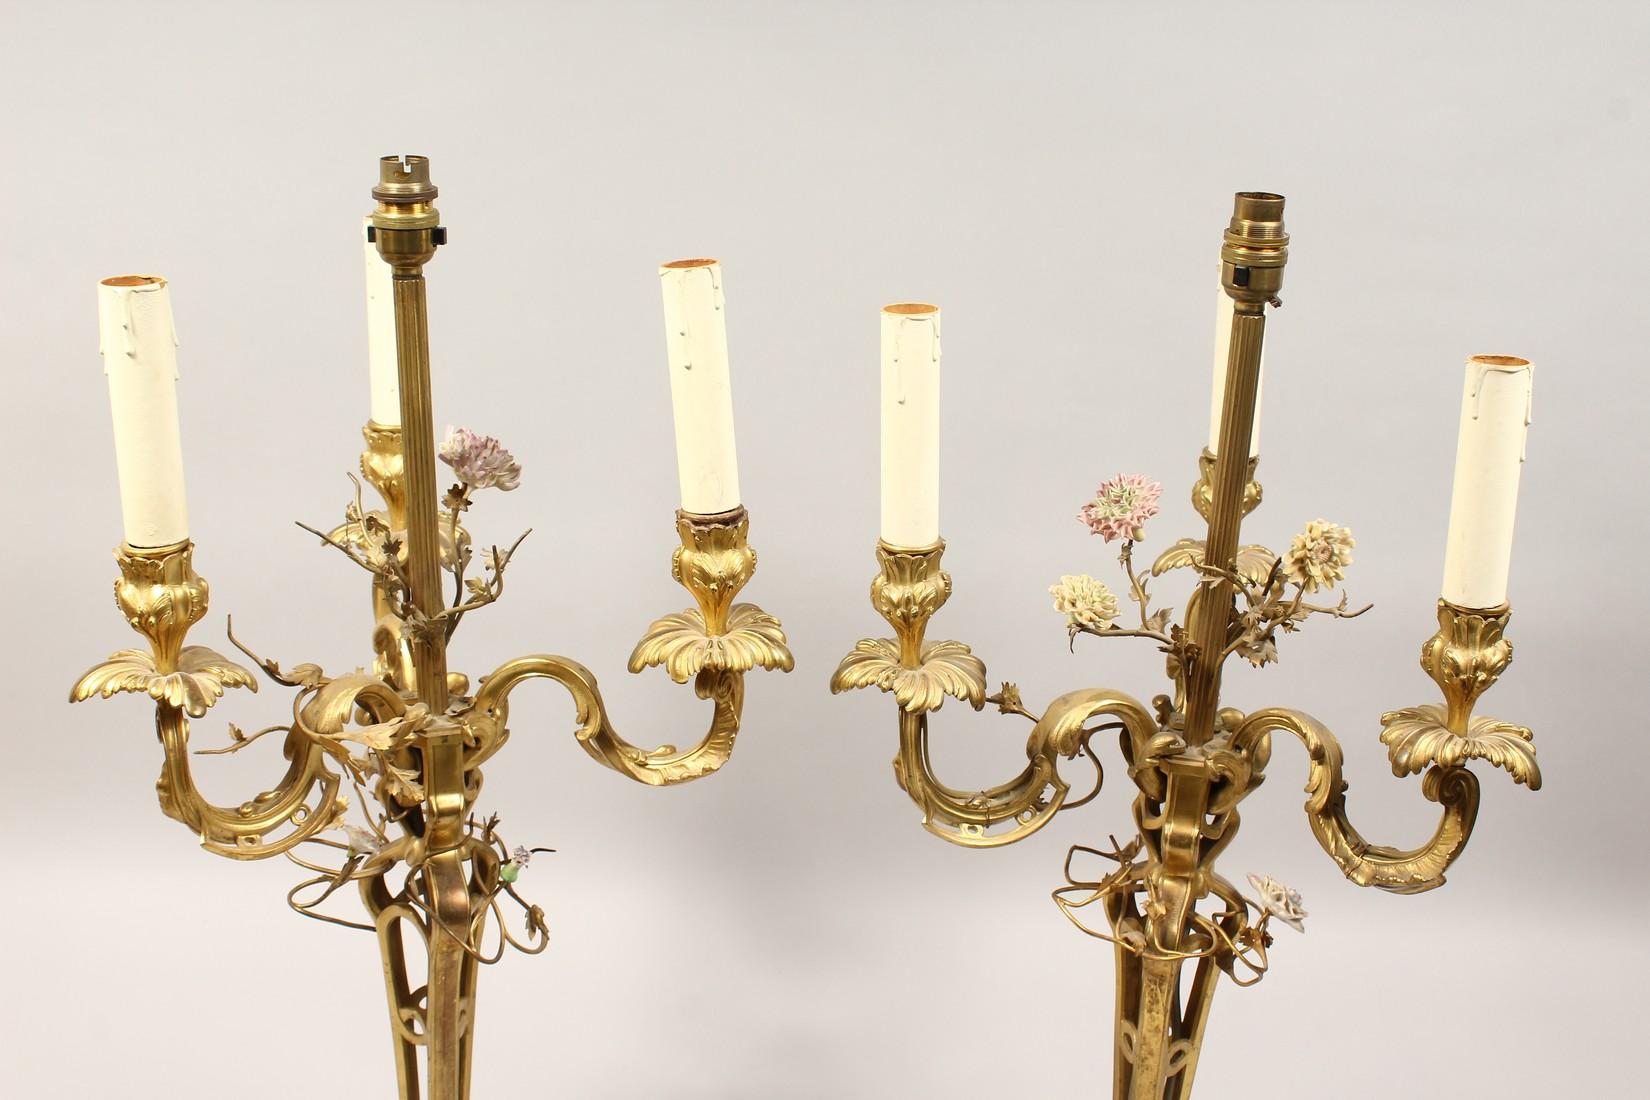 A GOOD PAIR OF FRENCH BRONZE THREE BRANCH CANDELABRA with scrolling arms and porcelain flowers 25ins - Image 2 of 5